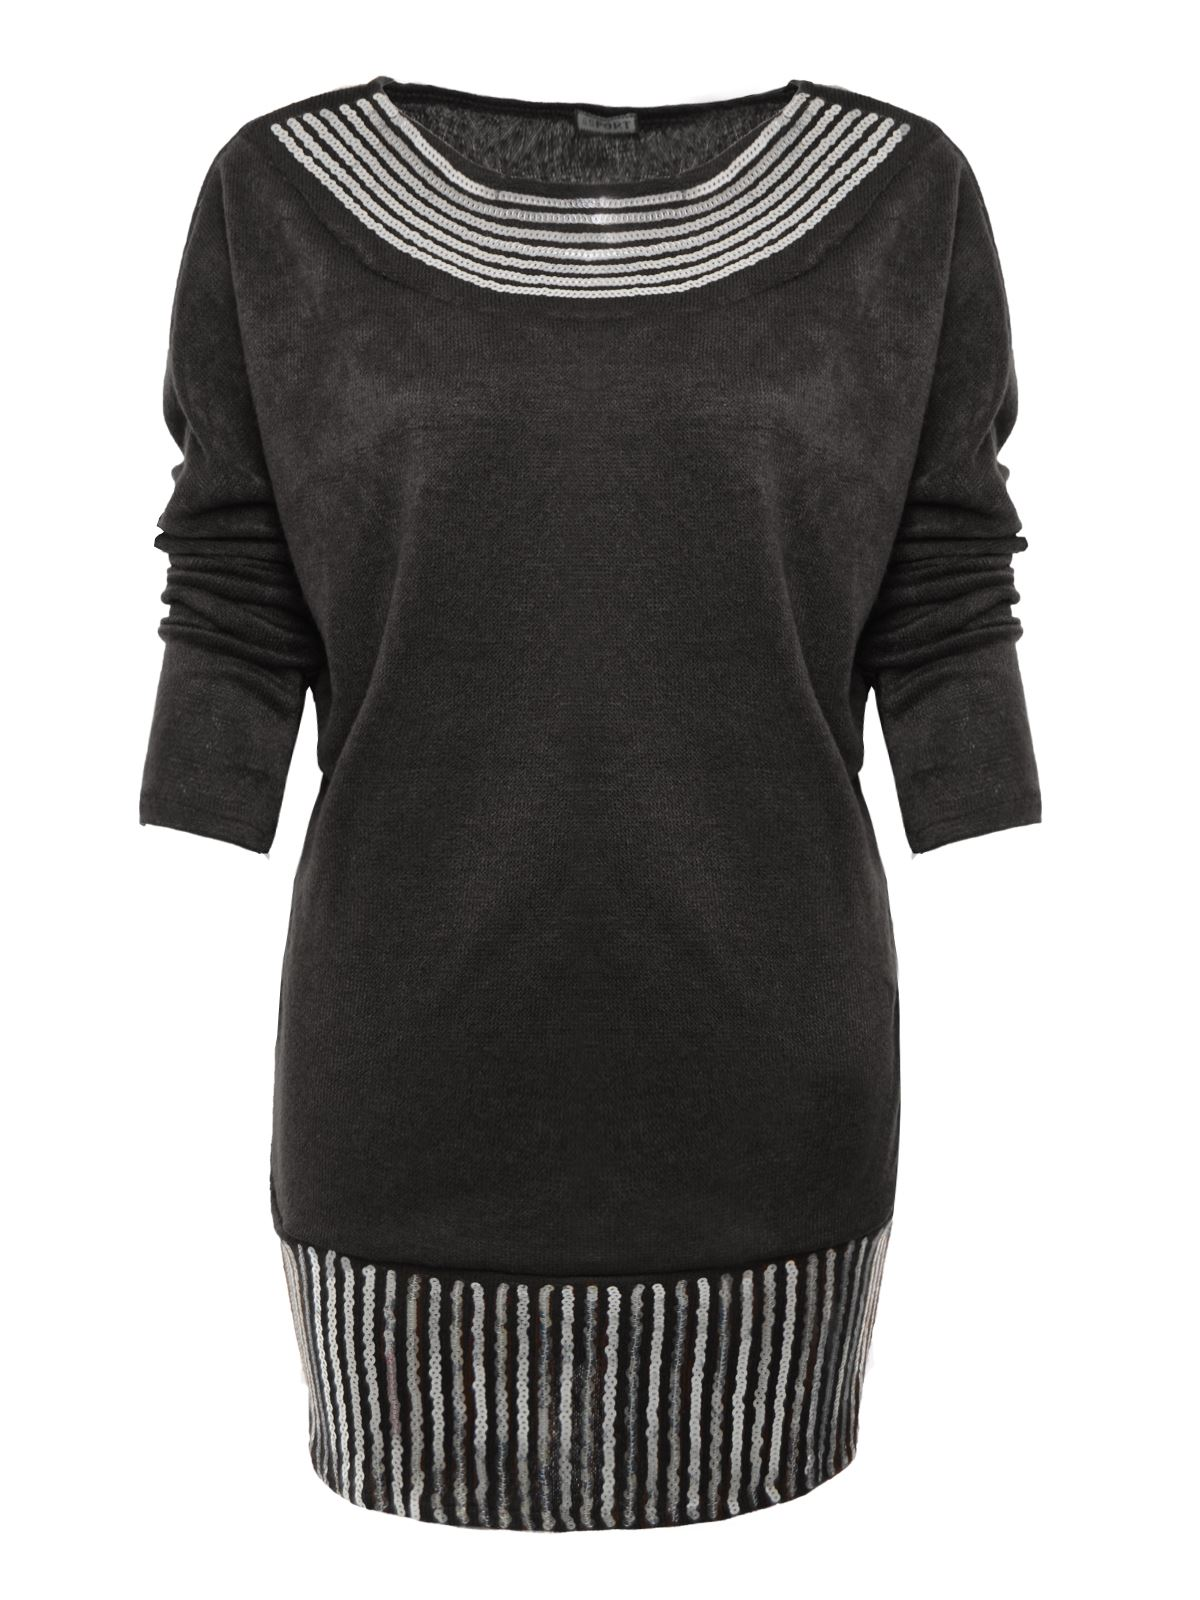 details about ladies womens knitted sequin batwing long sleeve jumper